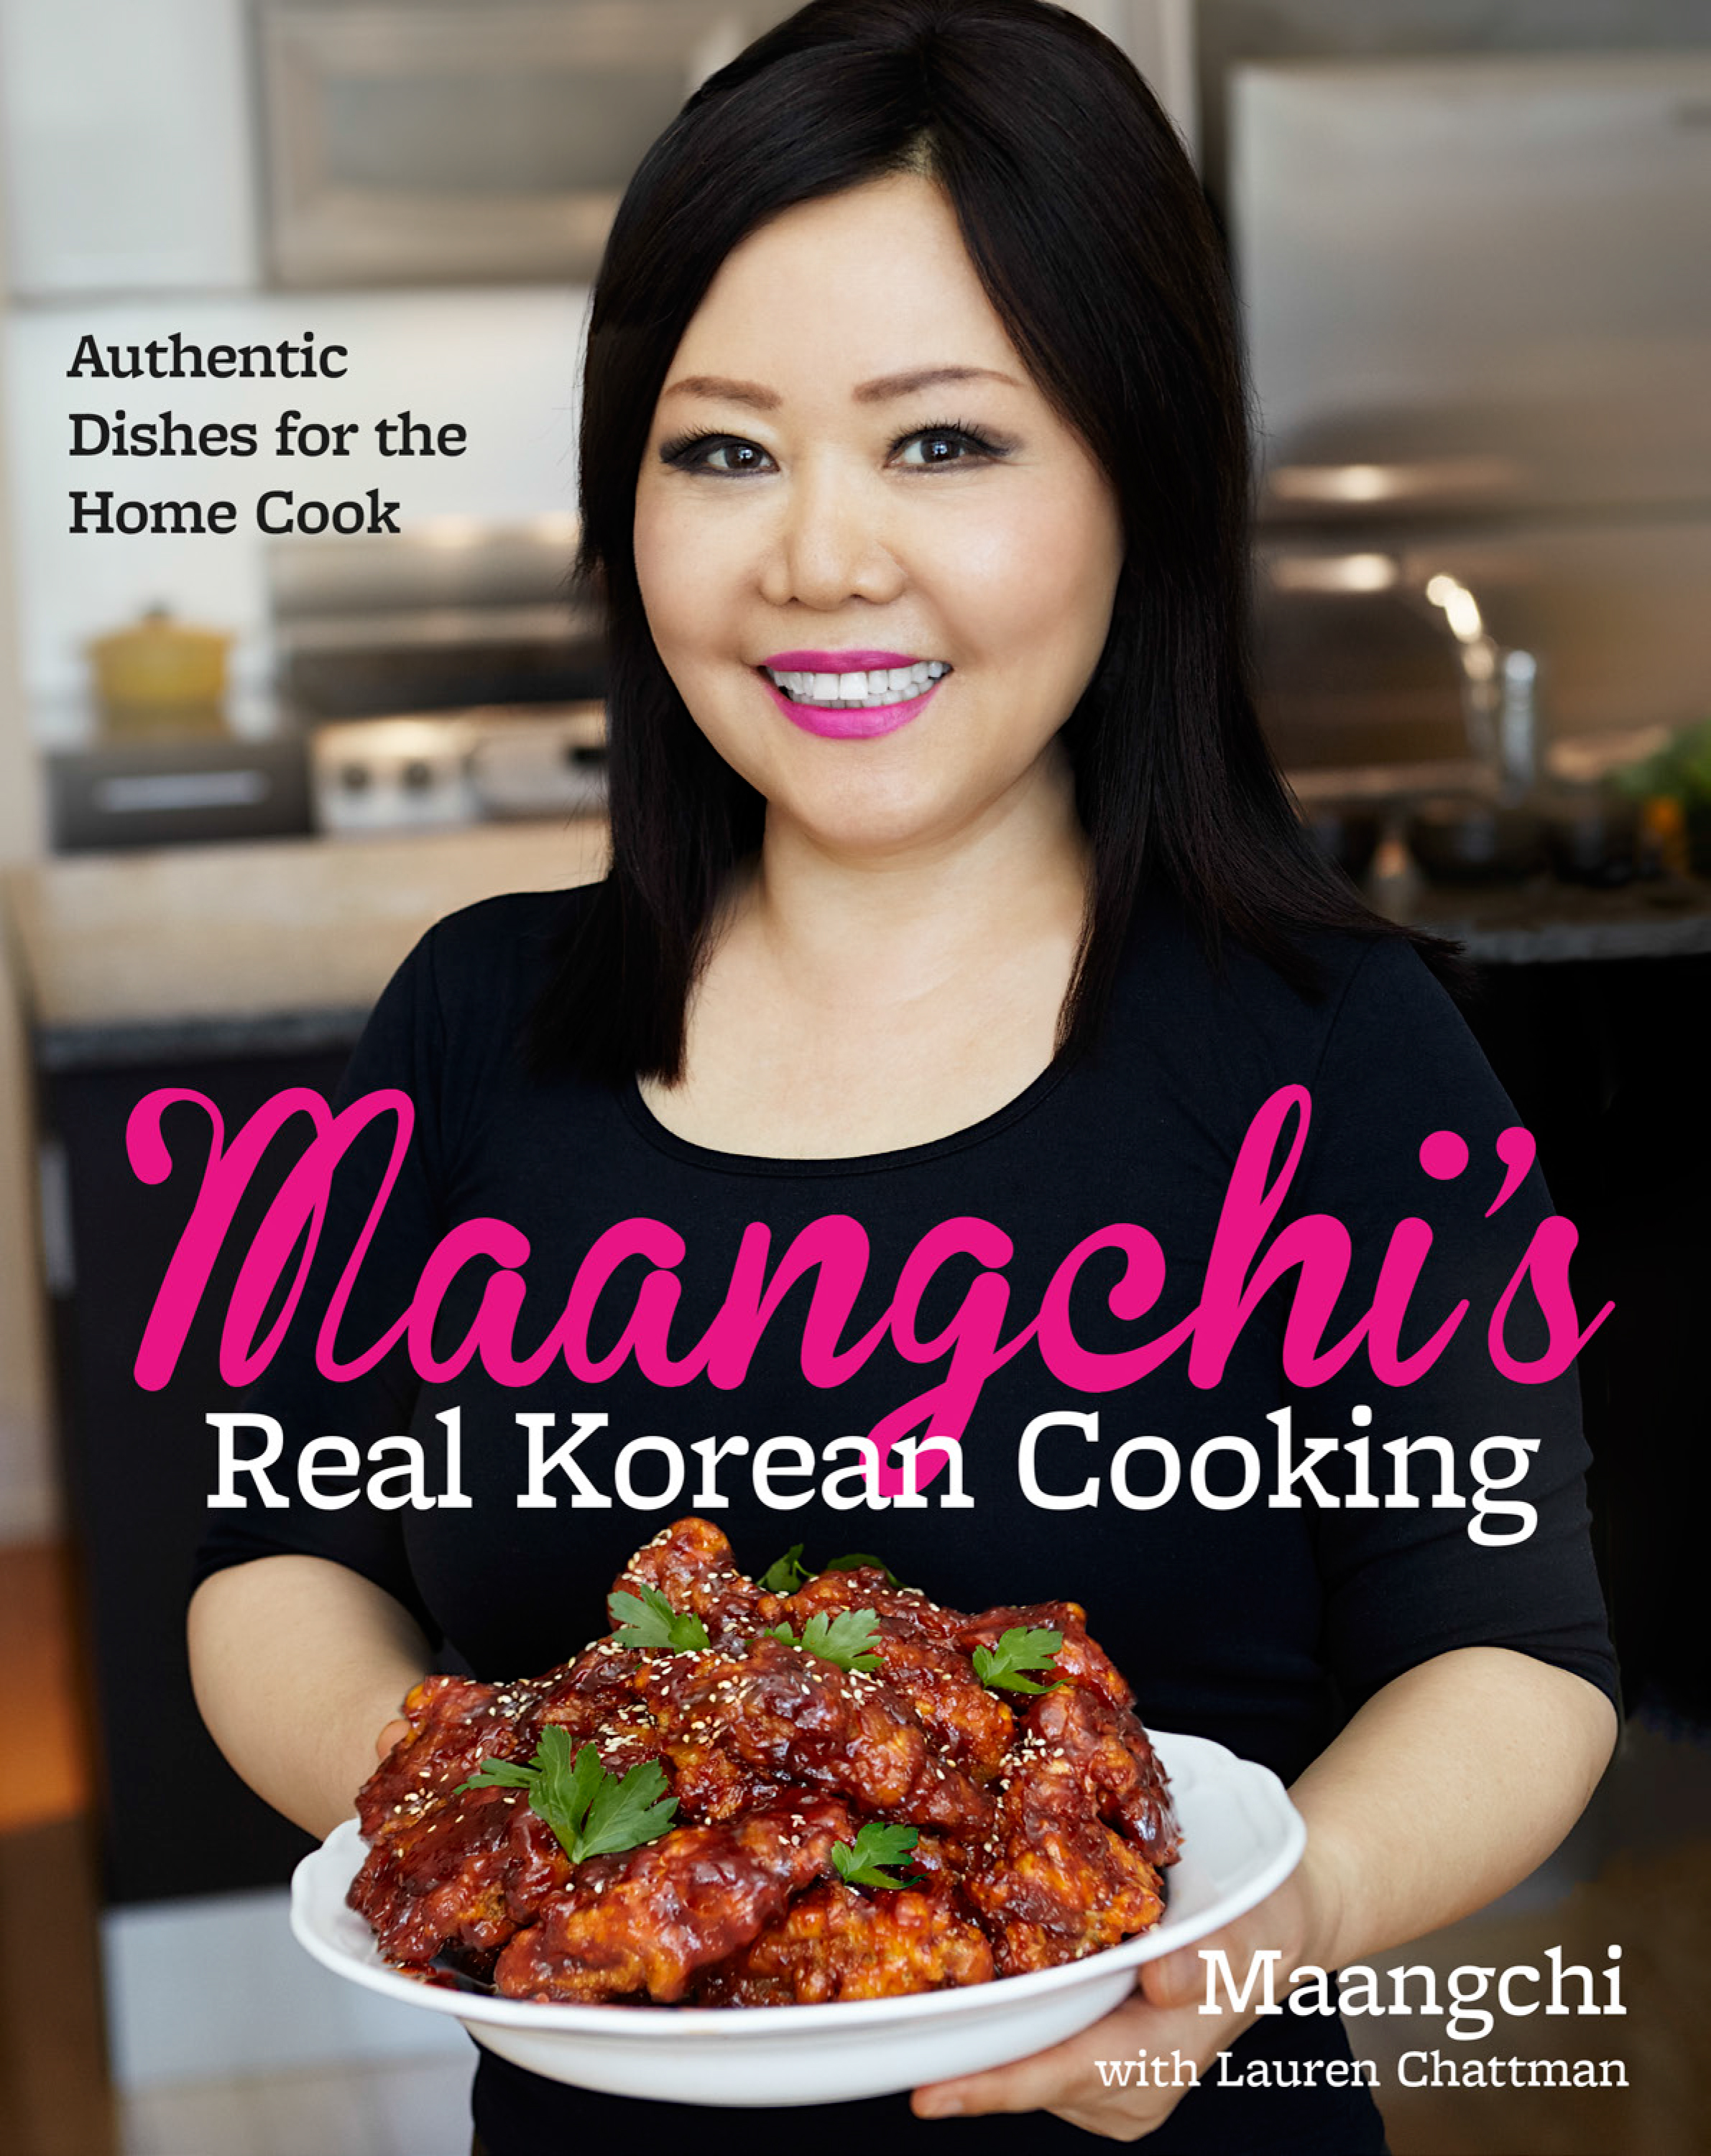 Maangchis real korean cooking a cookbook of delicious authentic maangchis real korean cooking a cookbook of delicious authentic korean recipes forumfinder Images